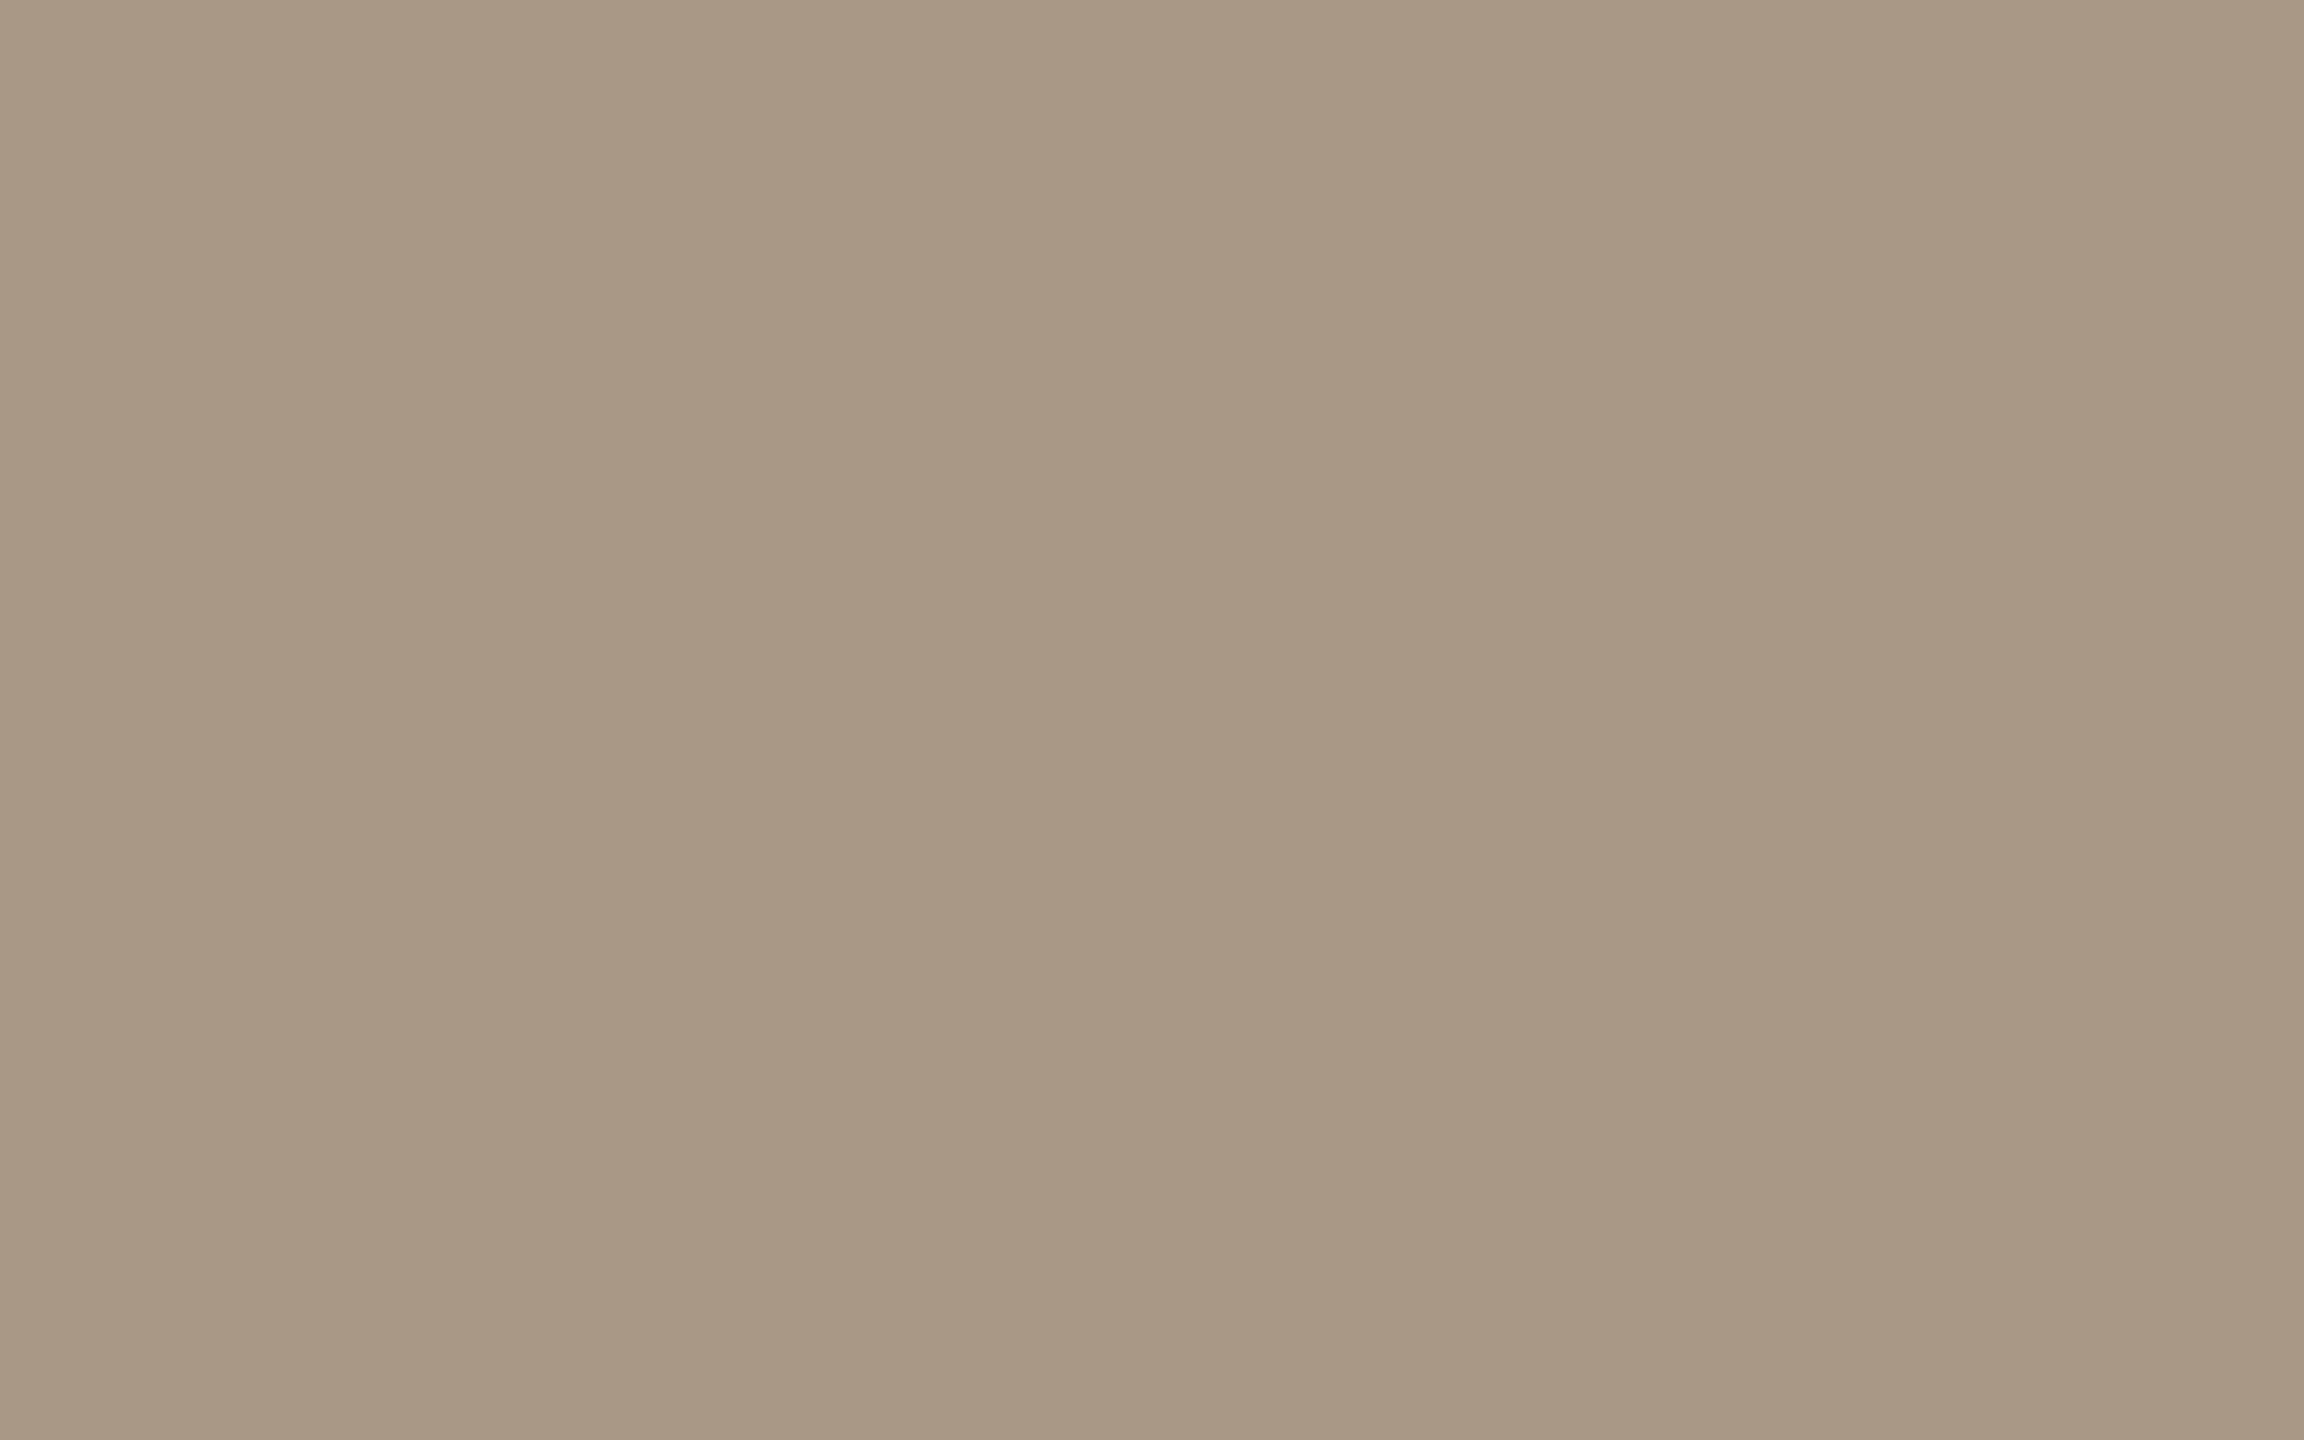 2304x1440 Grullo Solid Color Background